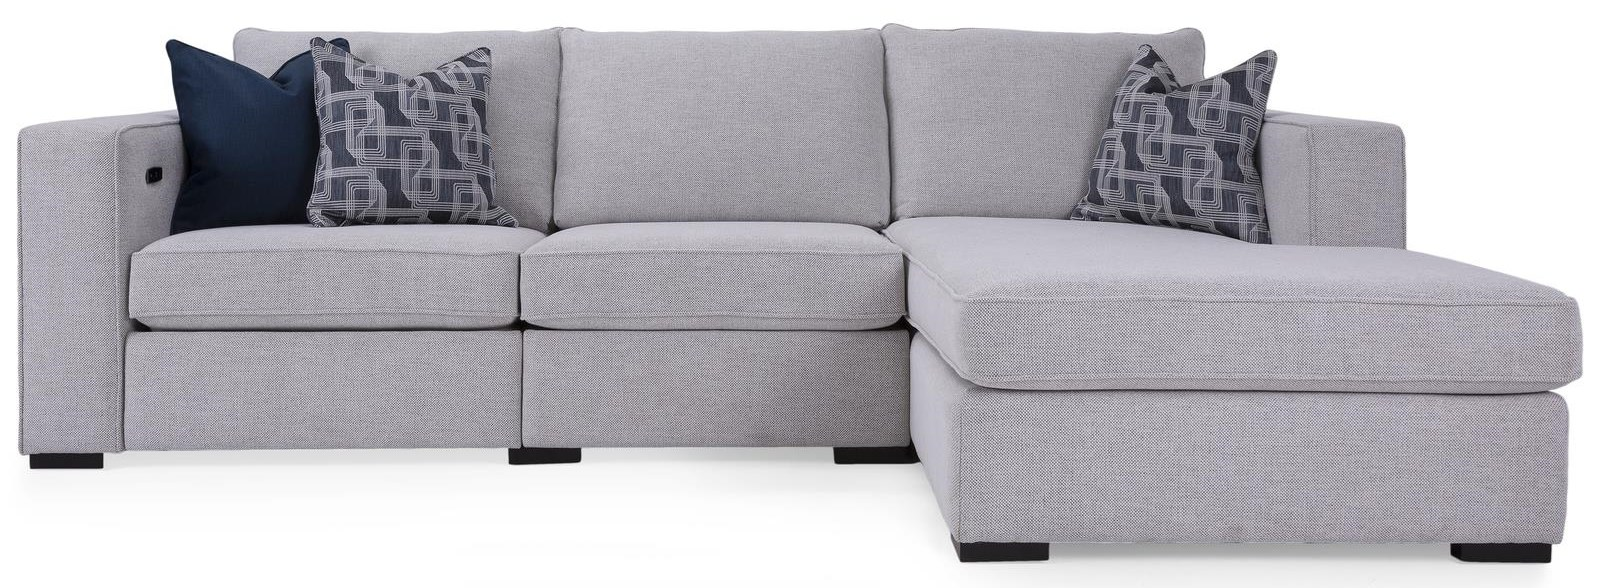 2900 Motion Sectional by Decor-Rest at Stoney Creek Furniture